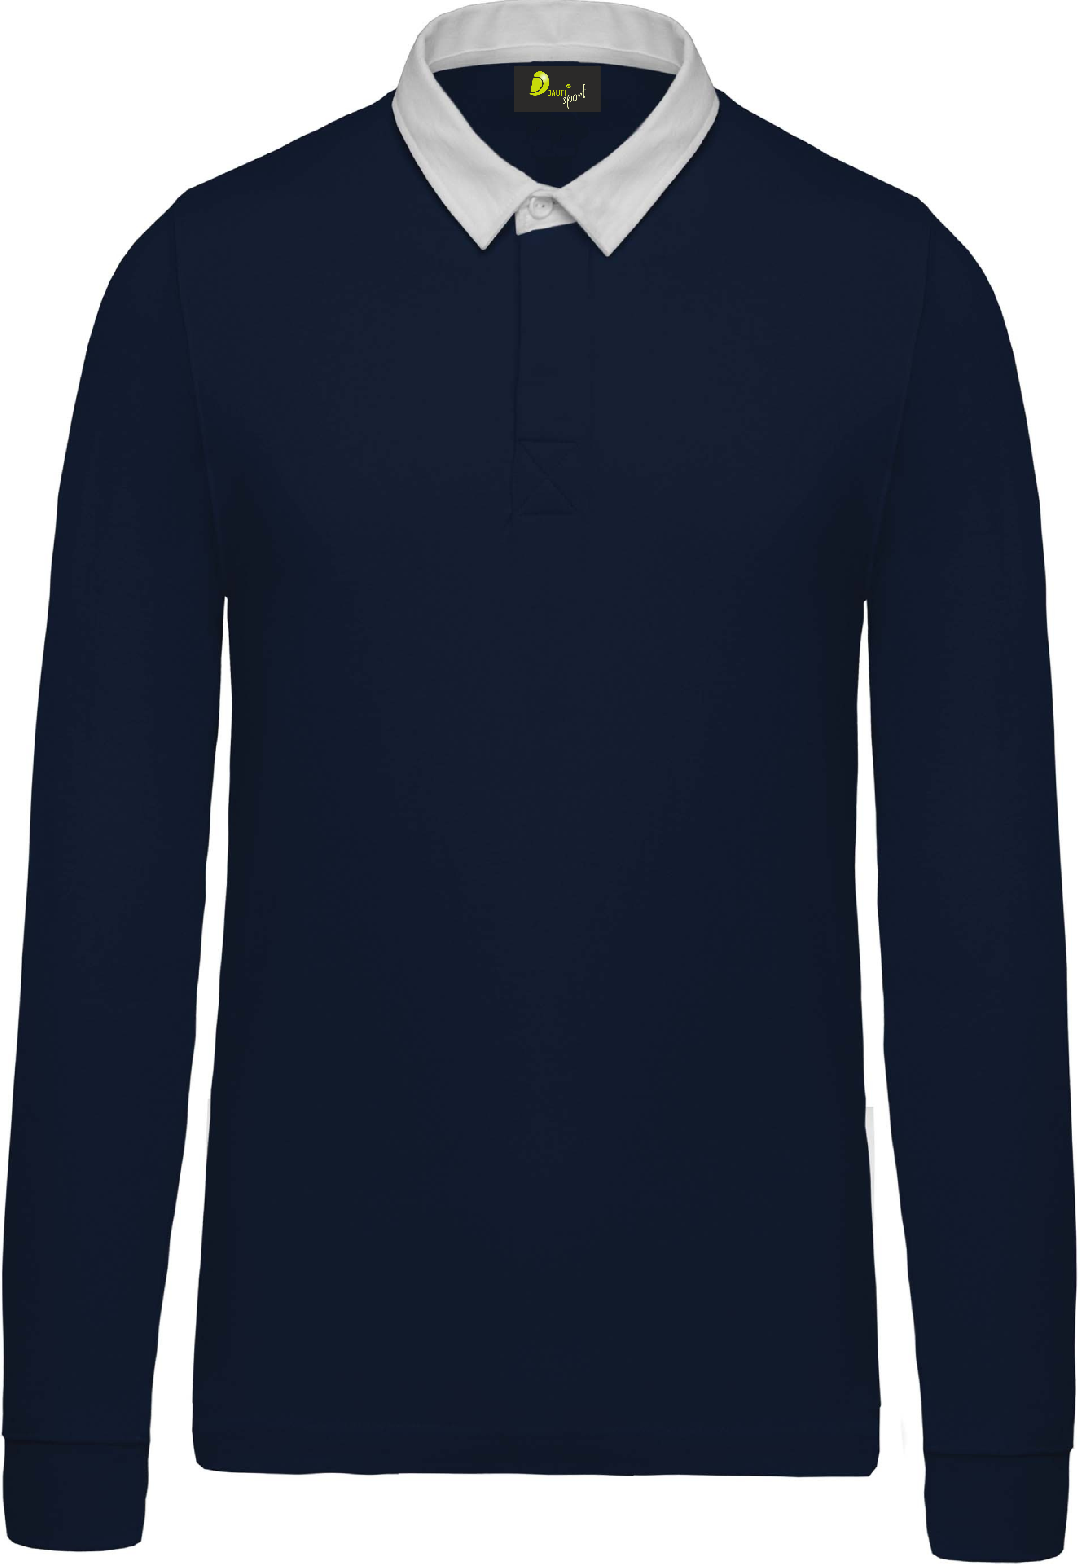 Polo child 100% cotton jersey long sleeve